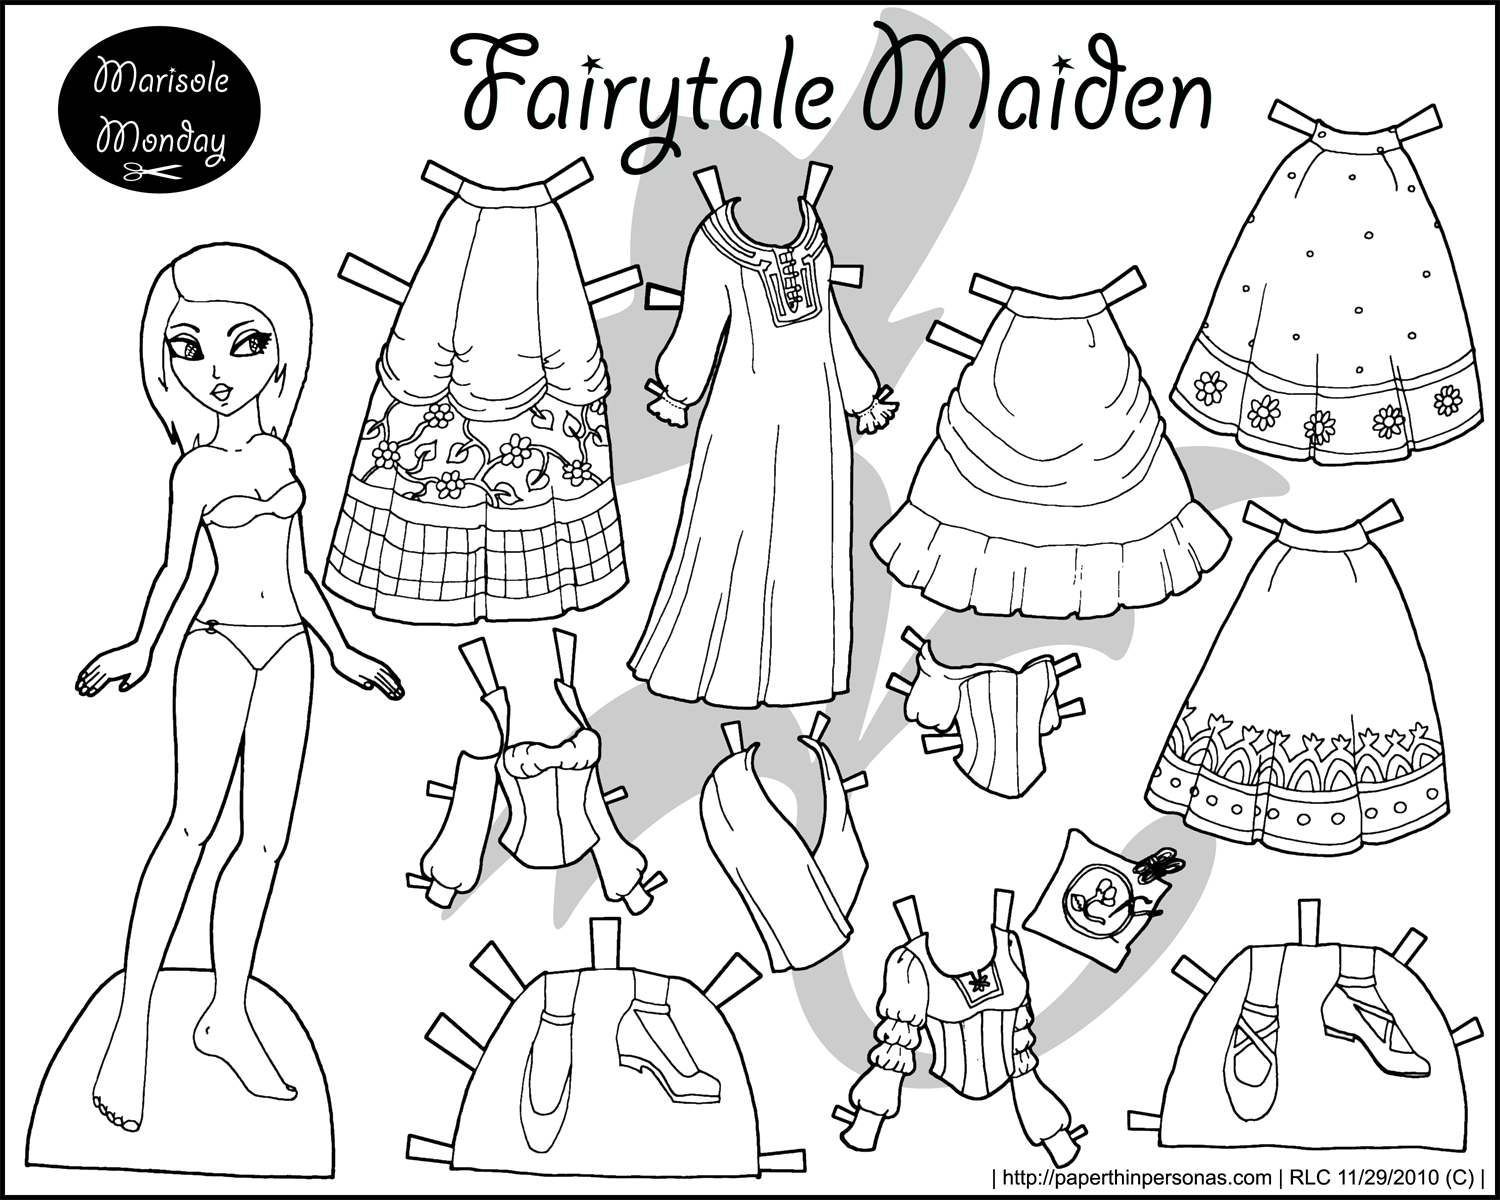 Beautiful A Fairy Tale Maiden Black And White Princess Coloring Page To Print And  Dress Up.